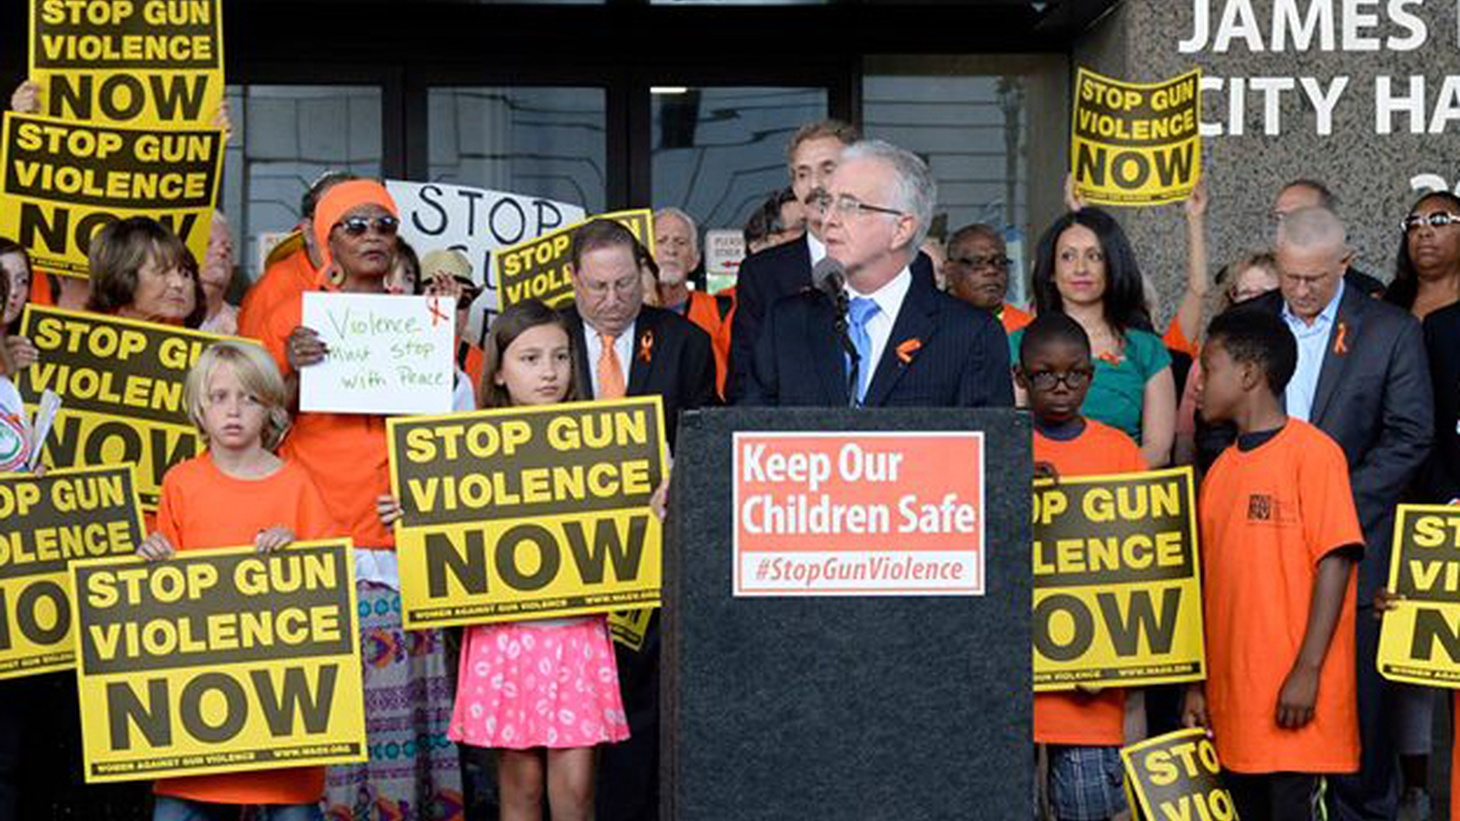 Mass shooters often use guns equipped with high-capacity magazines, so they don't have to stop and re-load. This week, the LA City Council voted unanimously to ban magazines that hold more than 10 rounds. It's not really gun control, but advocates see momentum in that direction. Gun-rights groups see a threat to self-protection. Will it have any impact within -- or beyond -- city limits?